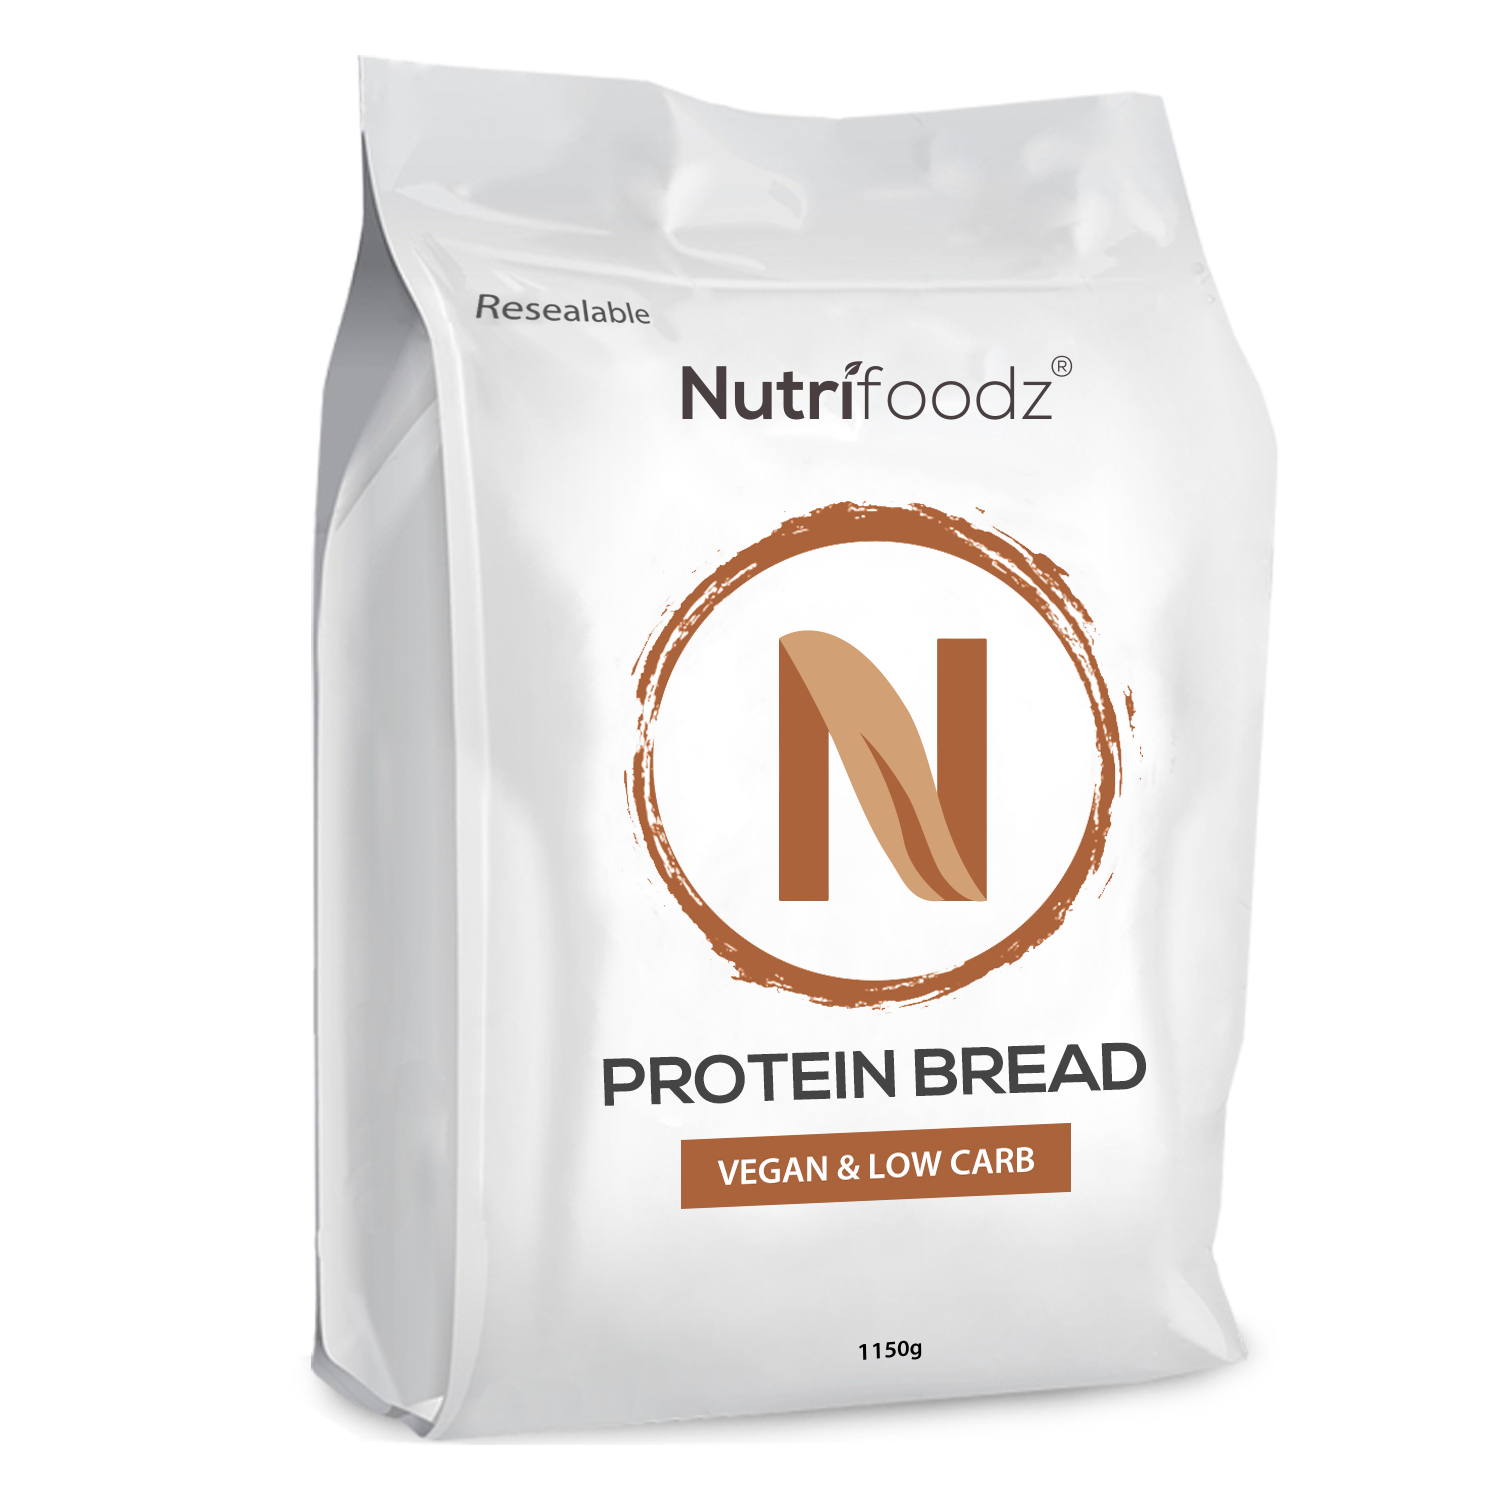 Protein Bread - 6 pack nutrition